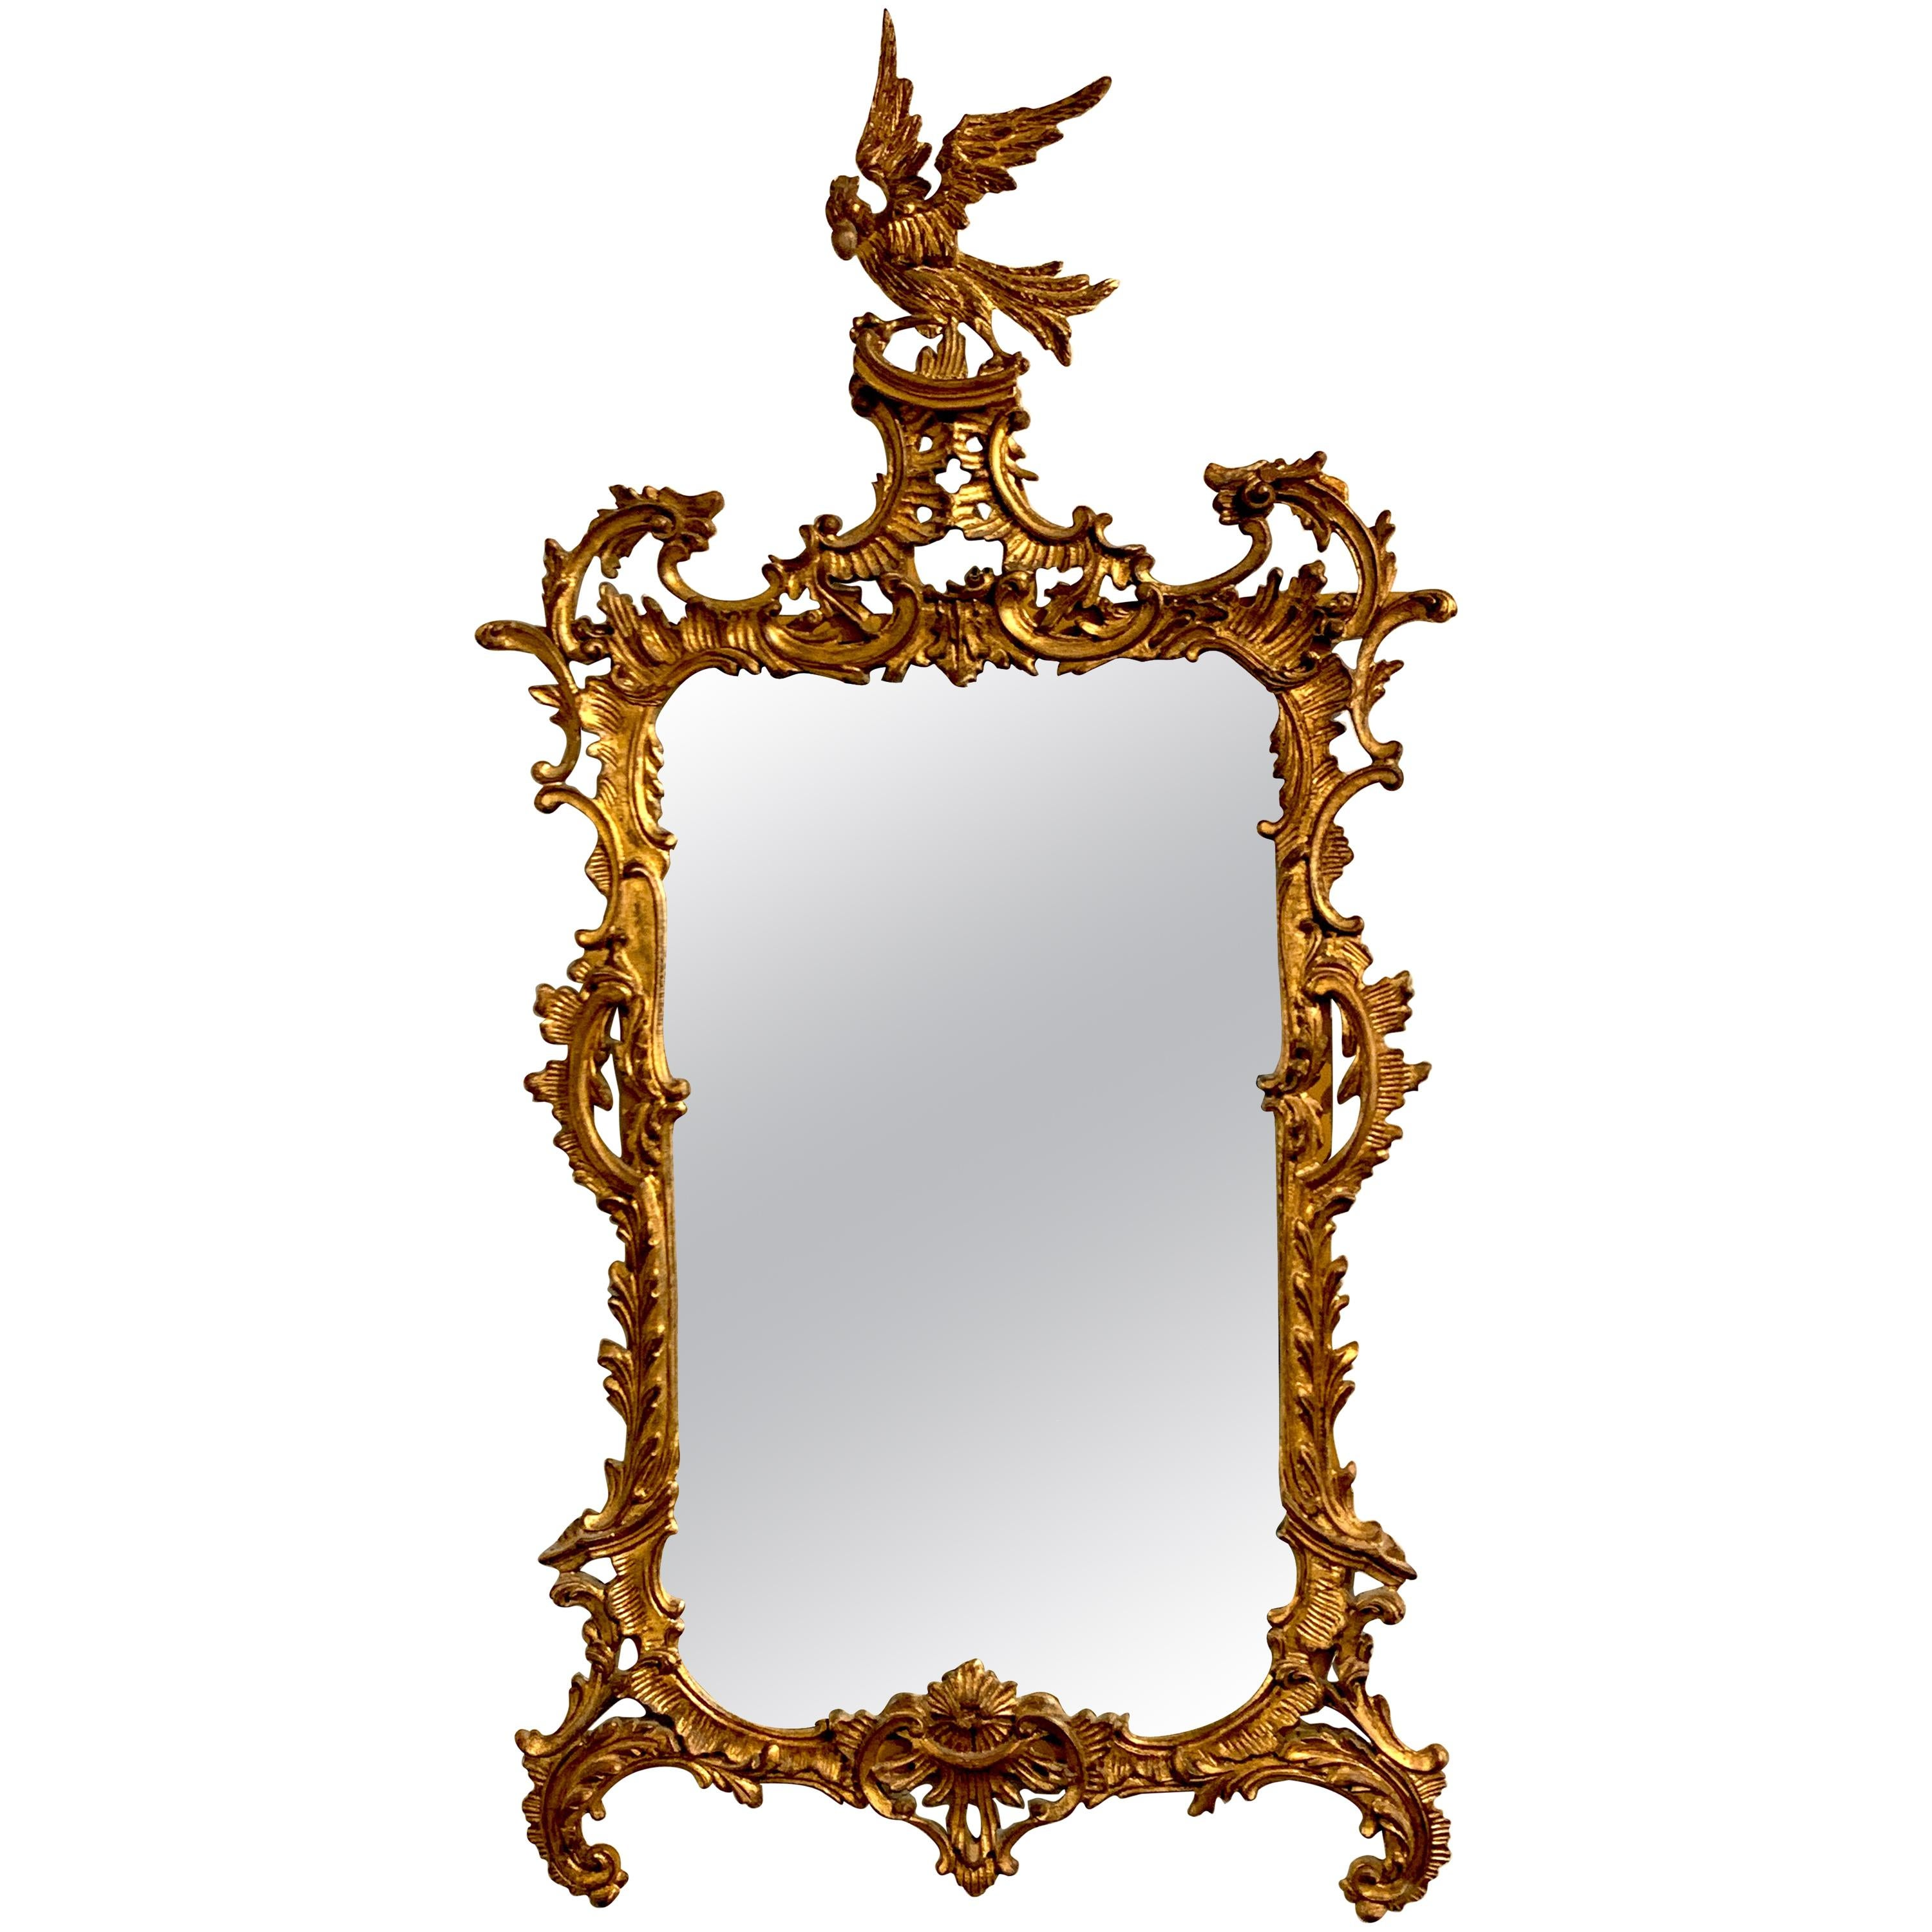 Chinese Chippendale or Chinoiserie Carved Giltwood Mirror